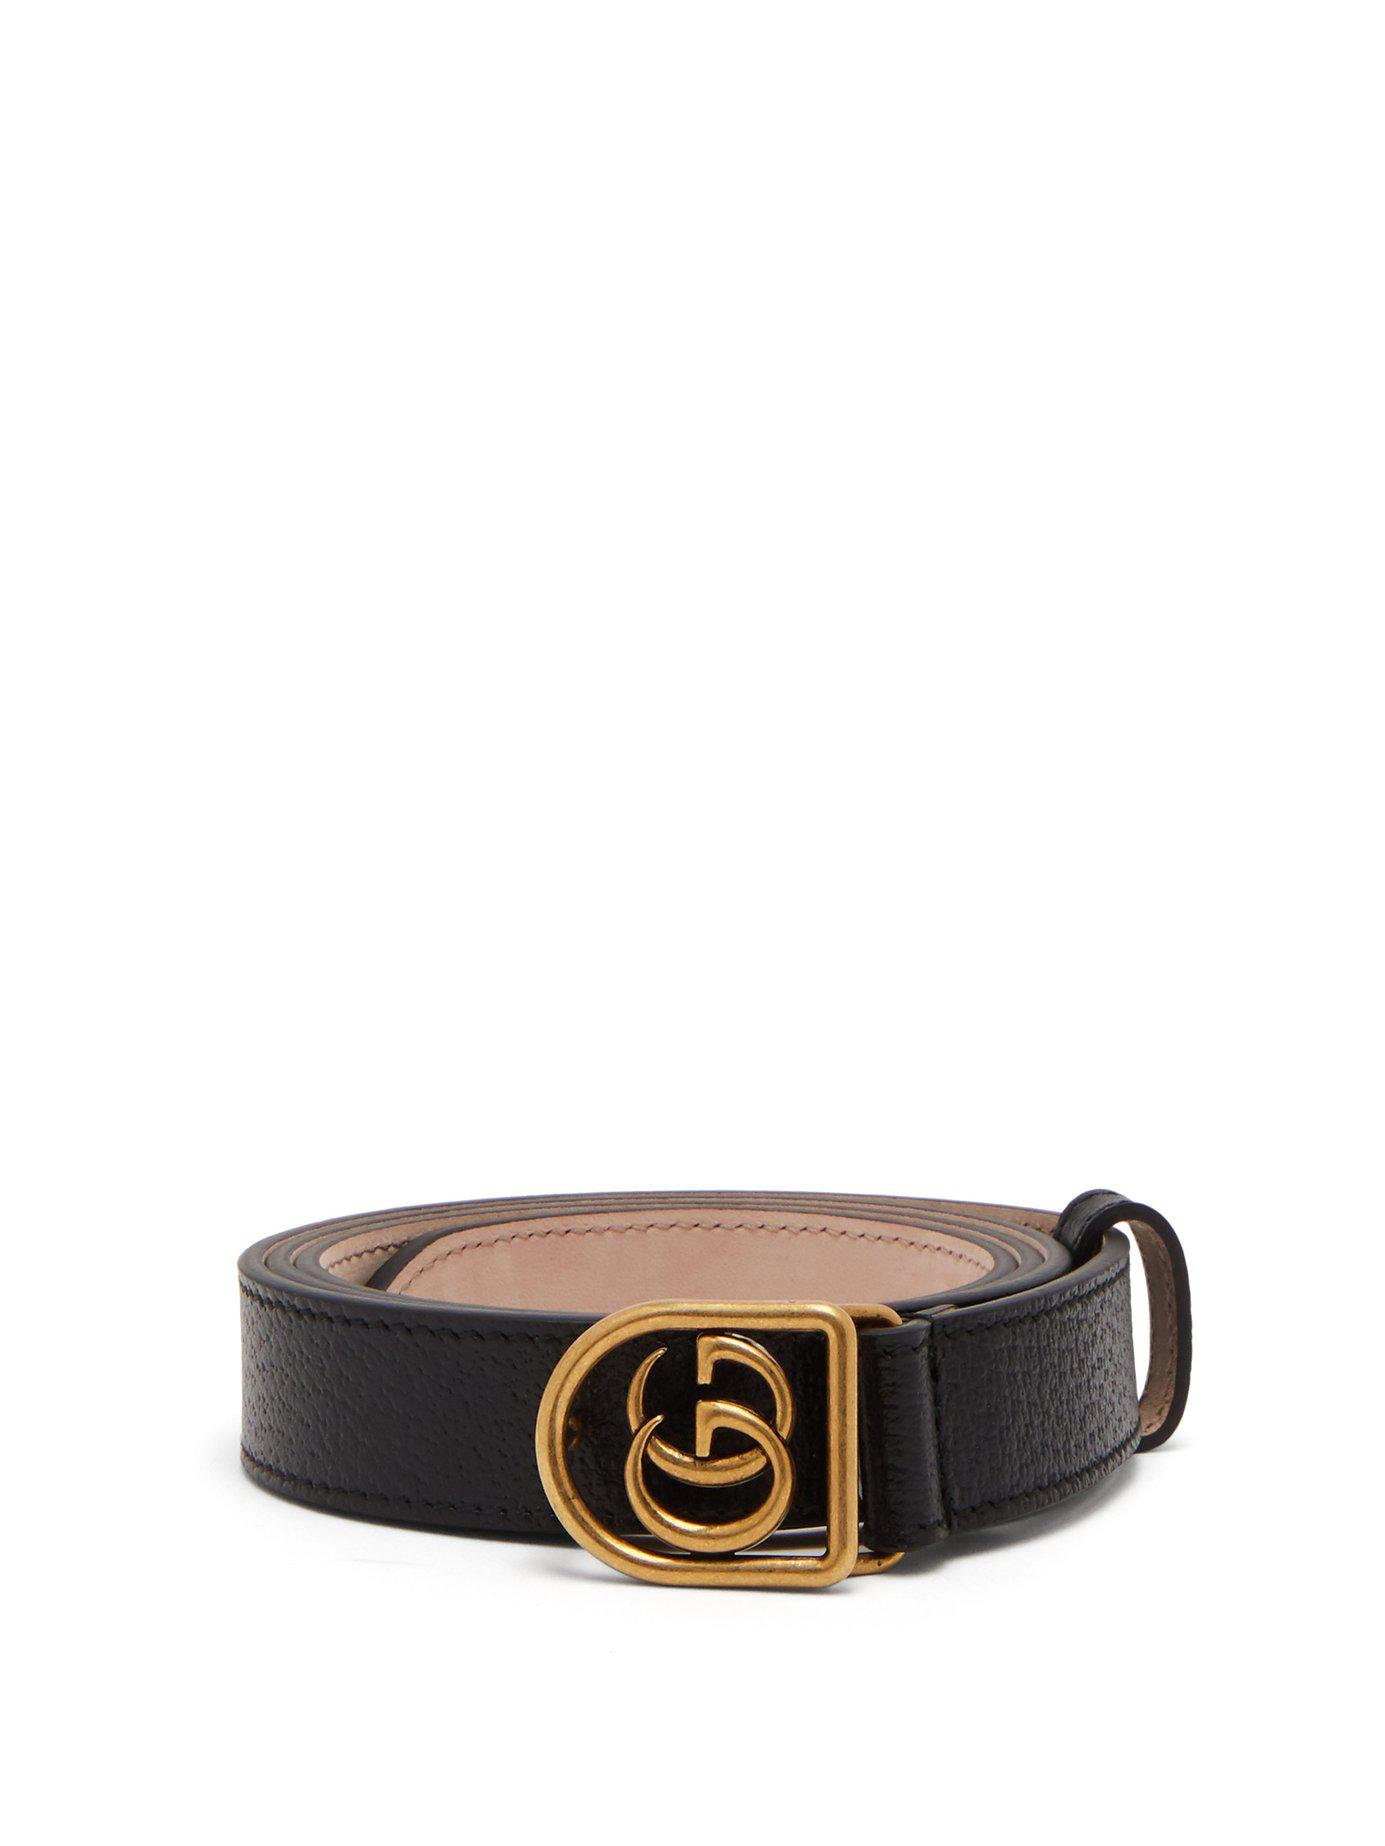 8b687c0022d Lyst - Gucci Tiger Head Leather Belt in Black for Men - Save 61%